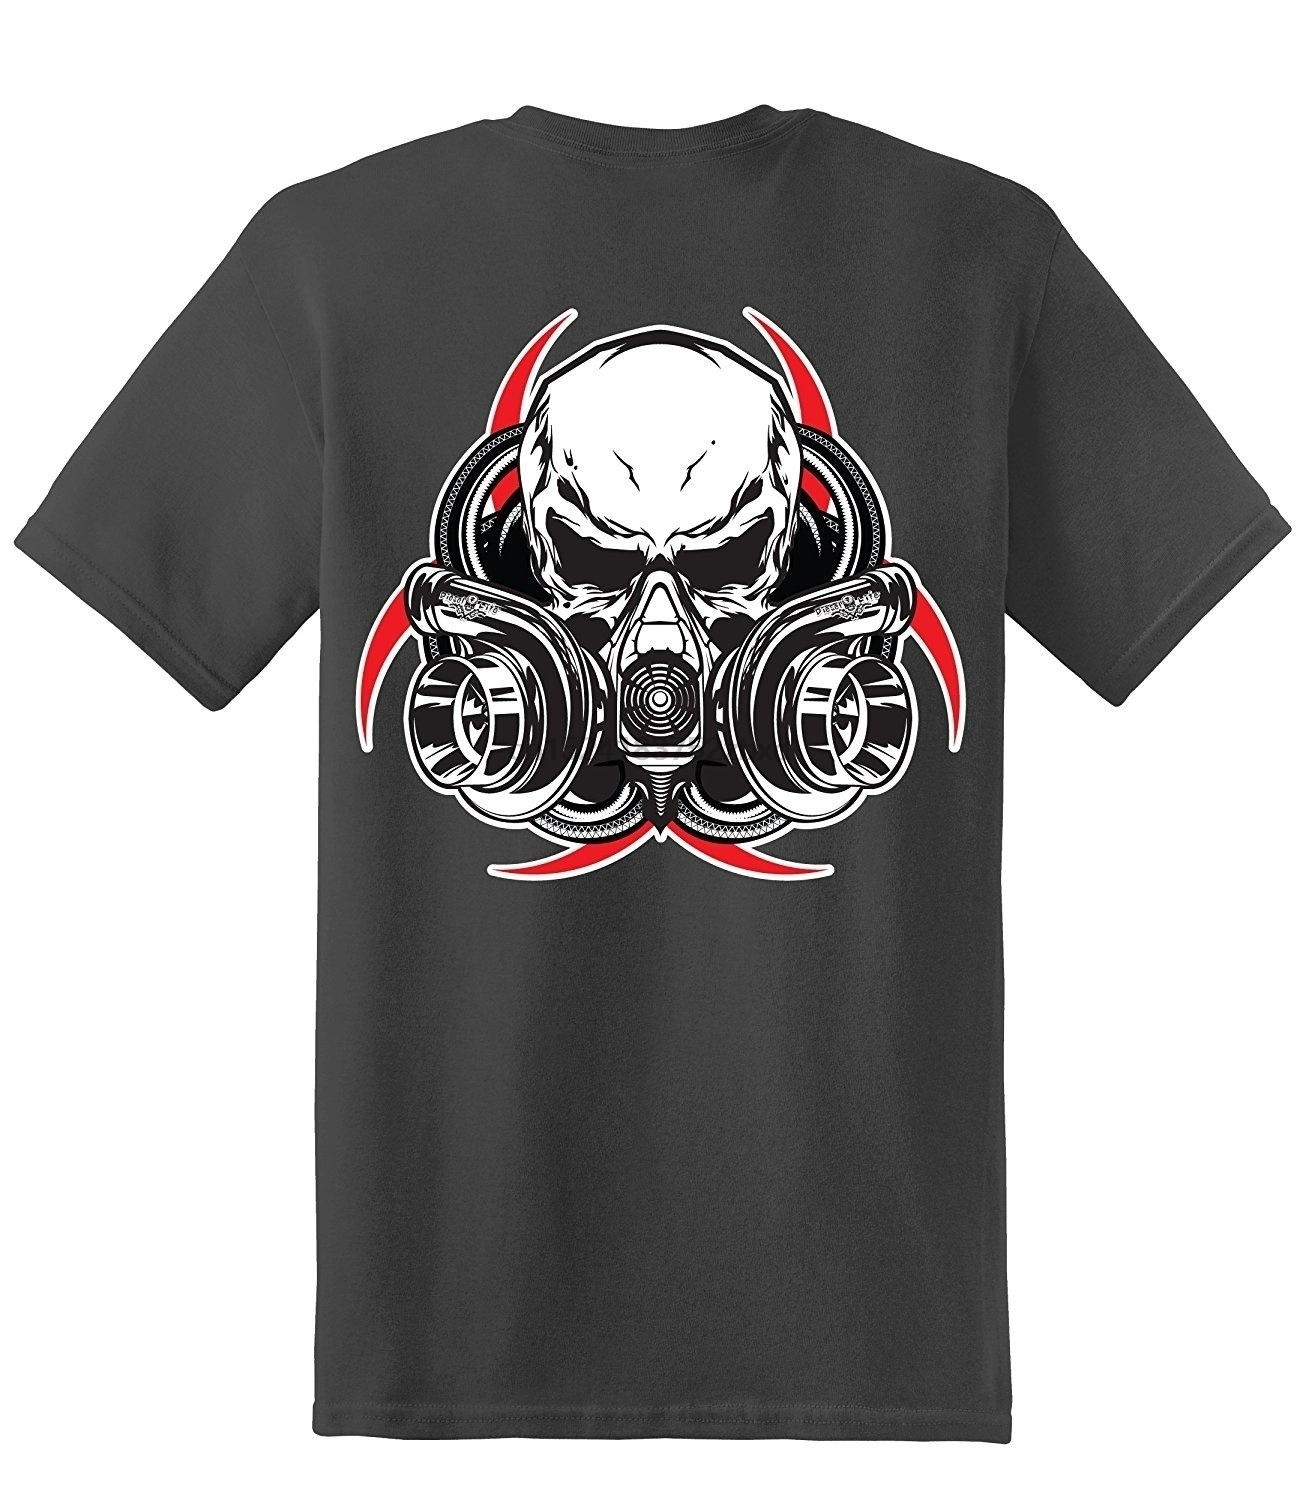 Orderly Cotton Letter Print T-shirt Gas Mask Short Sleeve Summer Fashion Style T-shirt Charcoal Distinctive For Its Traditional Properties Tops & Tees T-shirts